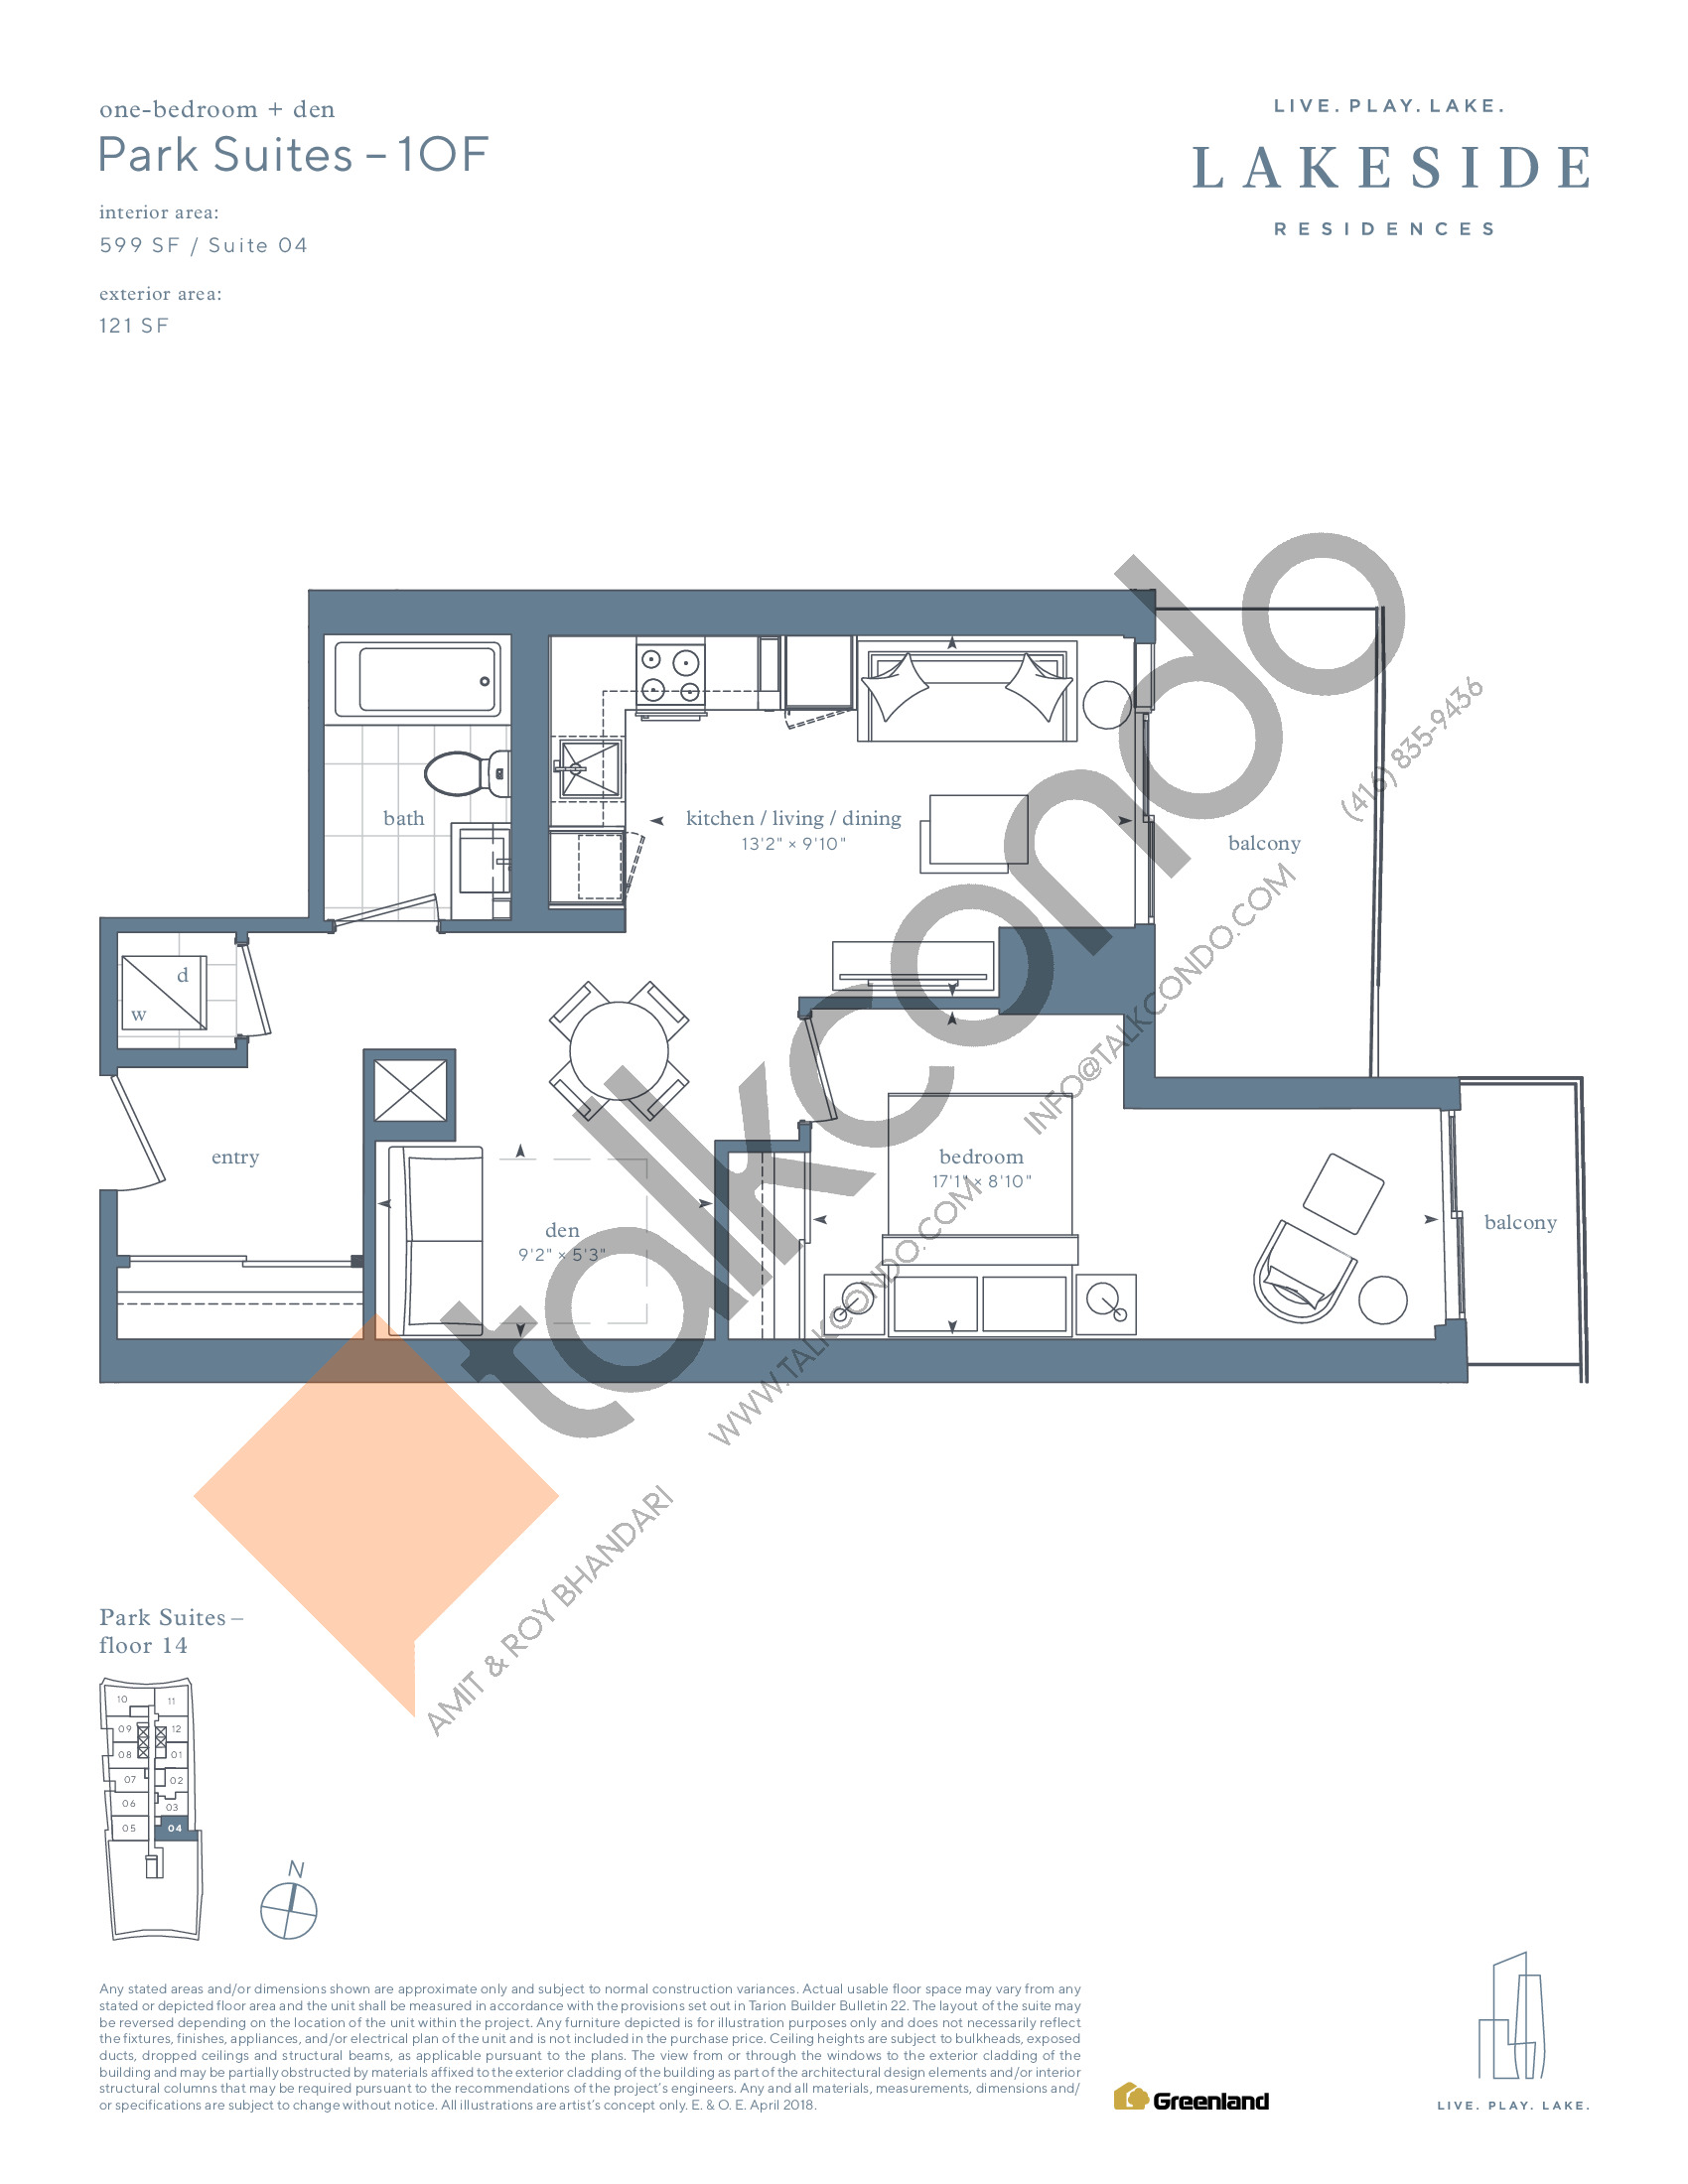 Park Suites - 1OF Floor Plan at Lakeside Residences - 599 sq.ft